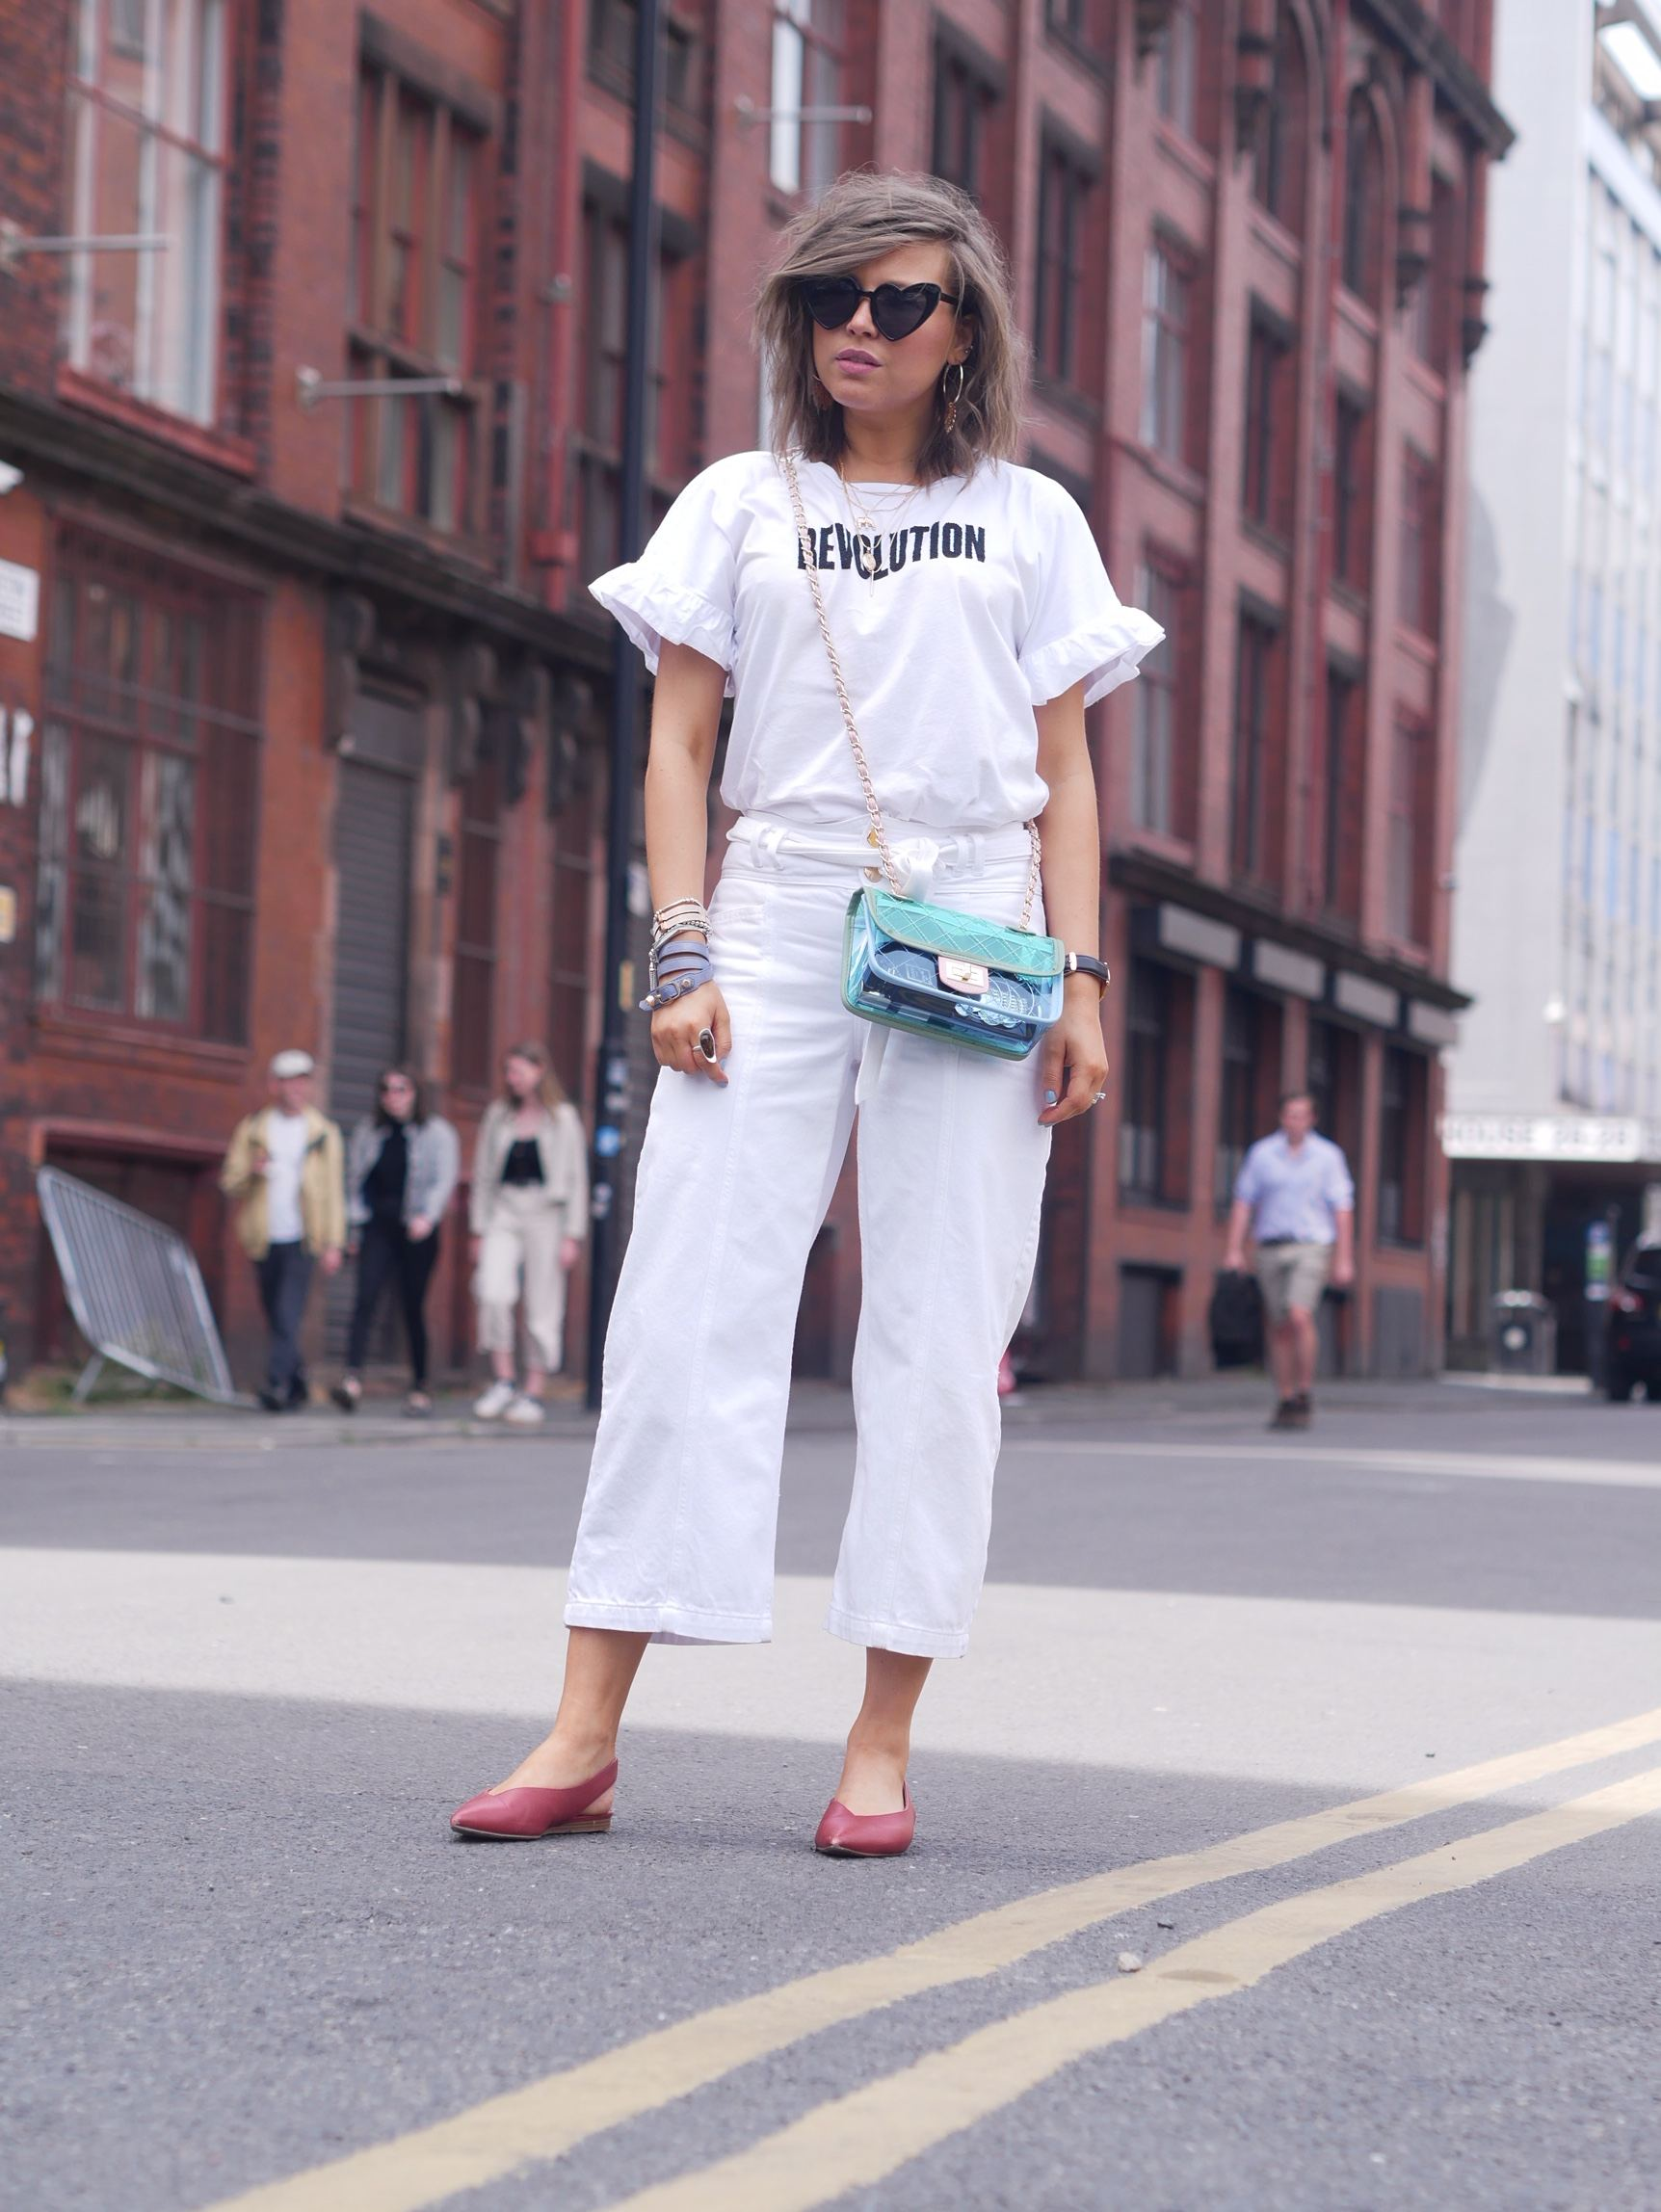 manchester blogger, manchester fashion blogger, outfit of the day, street style, beauty blogger